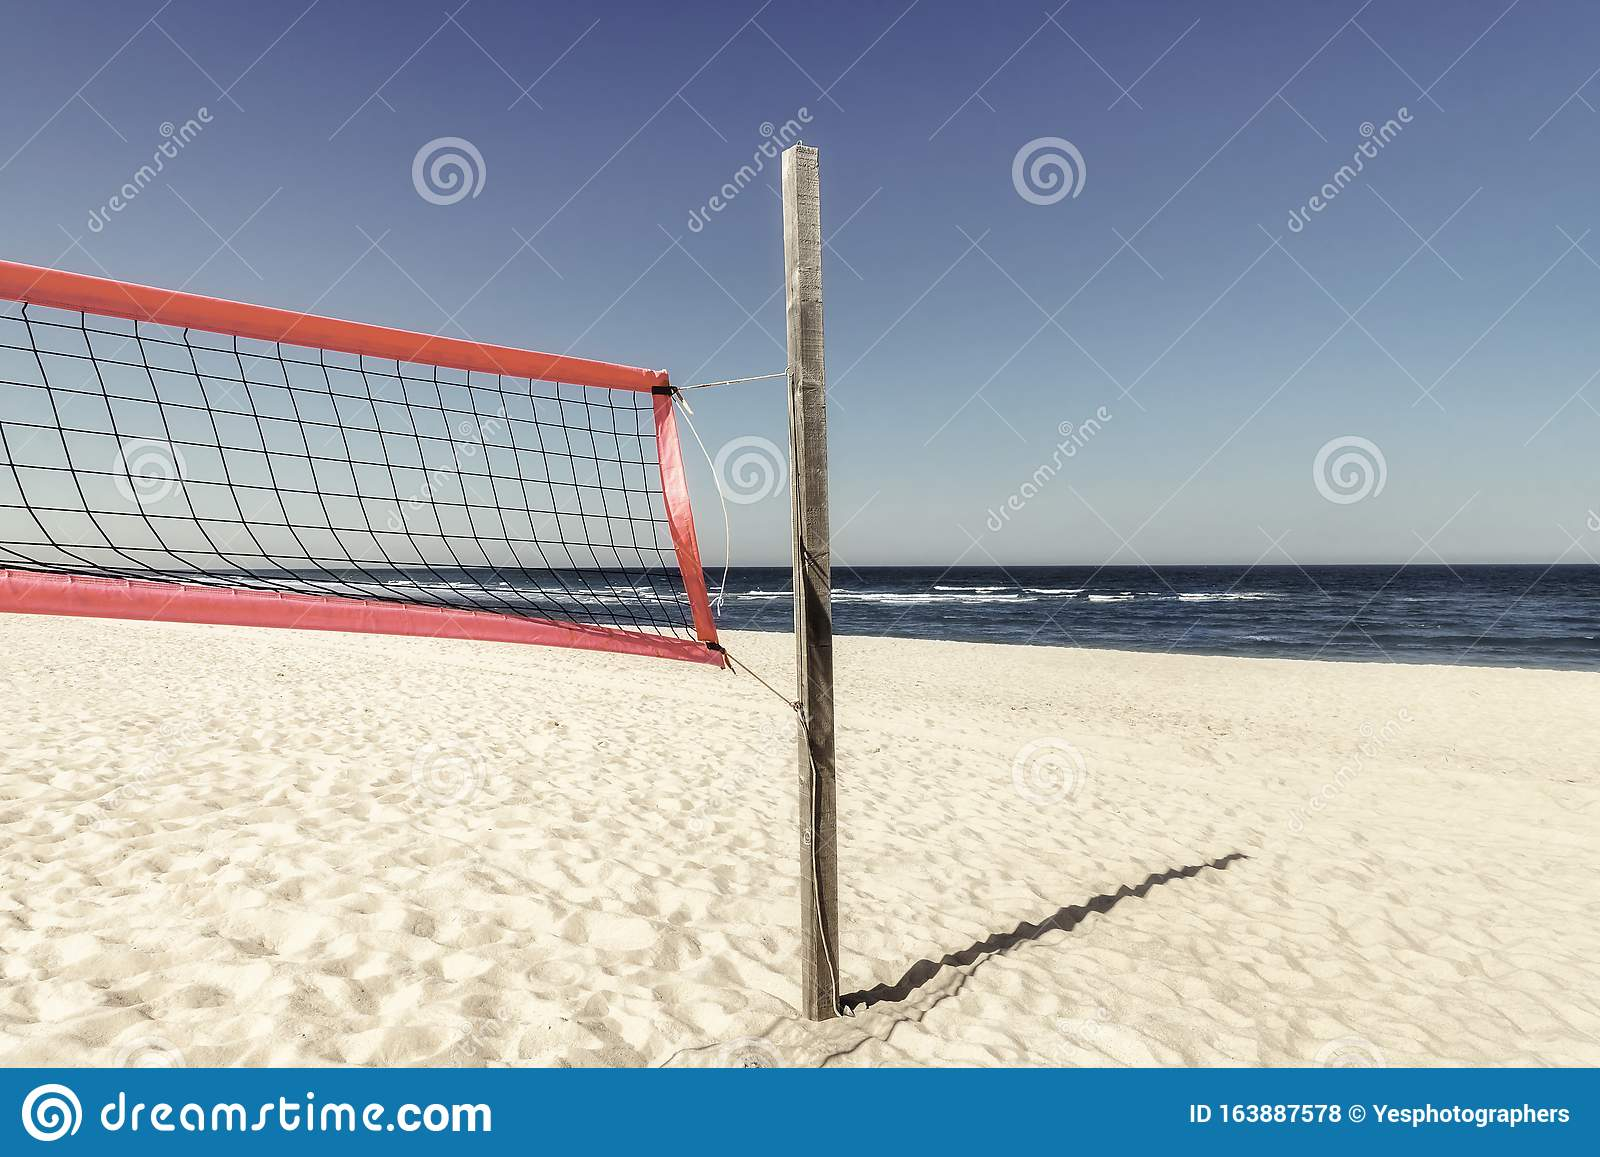 52 Beach Volleyball Scenery Island Photos Free Royalty Free Stock Photos From Dreamstime